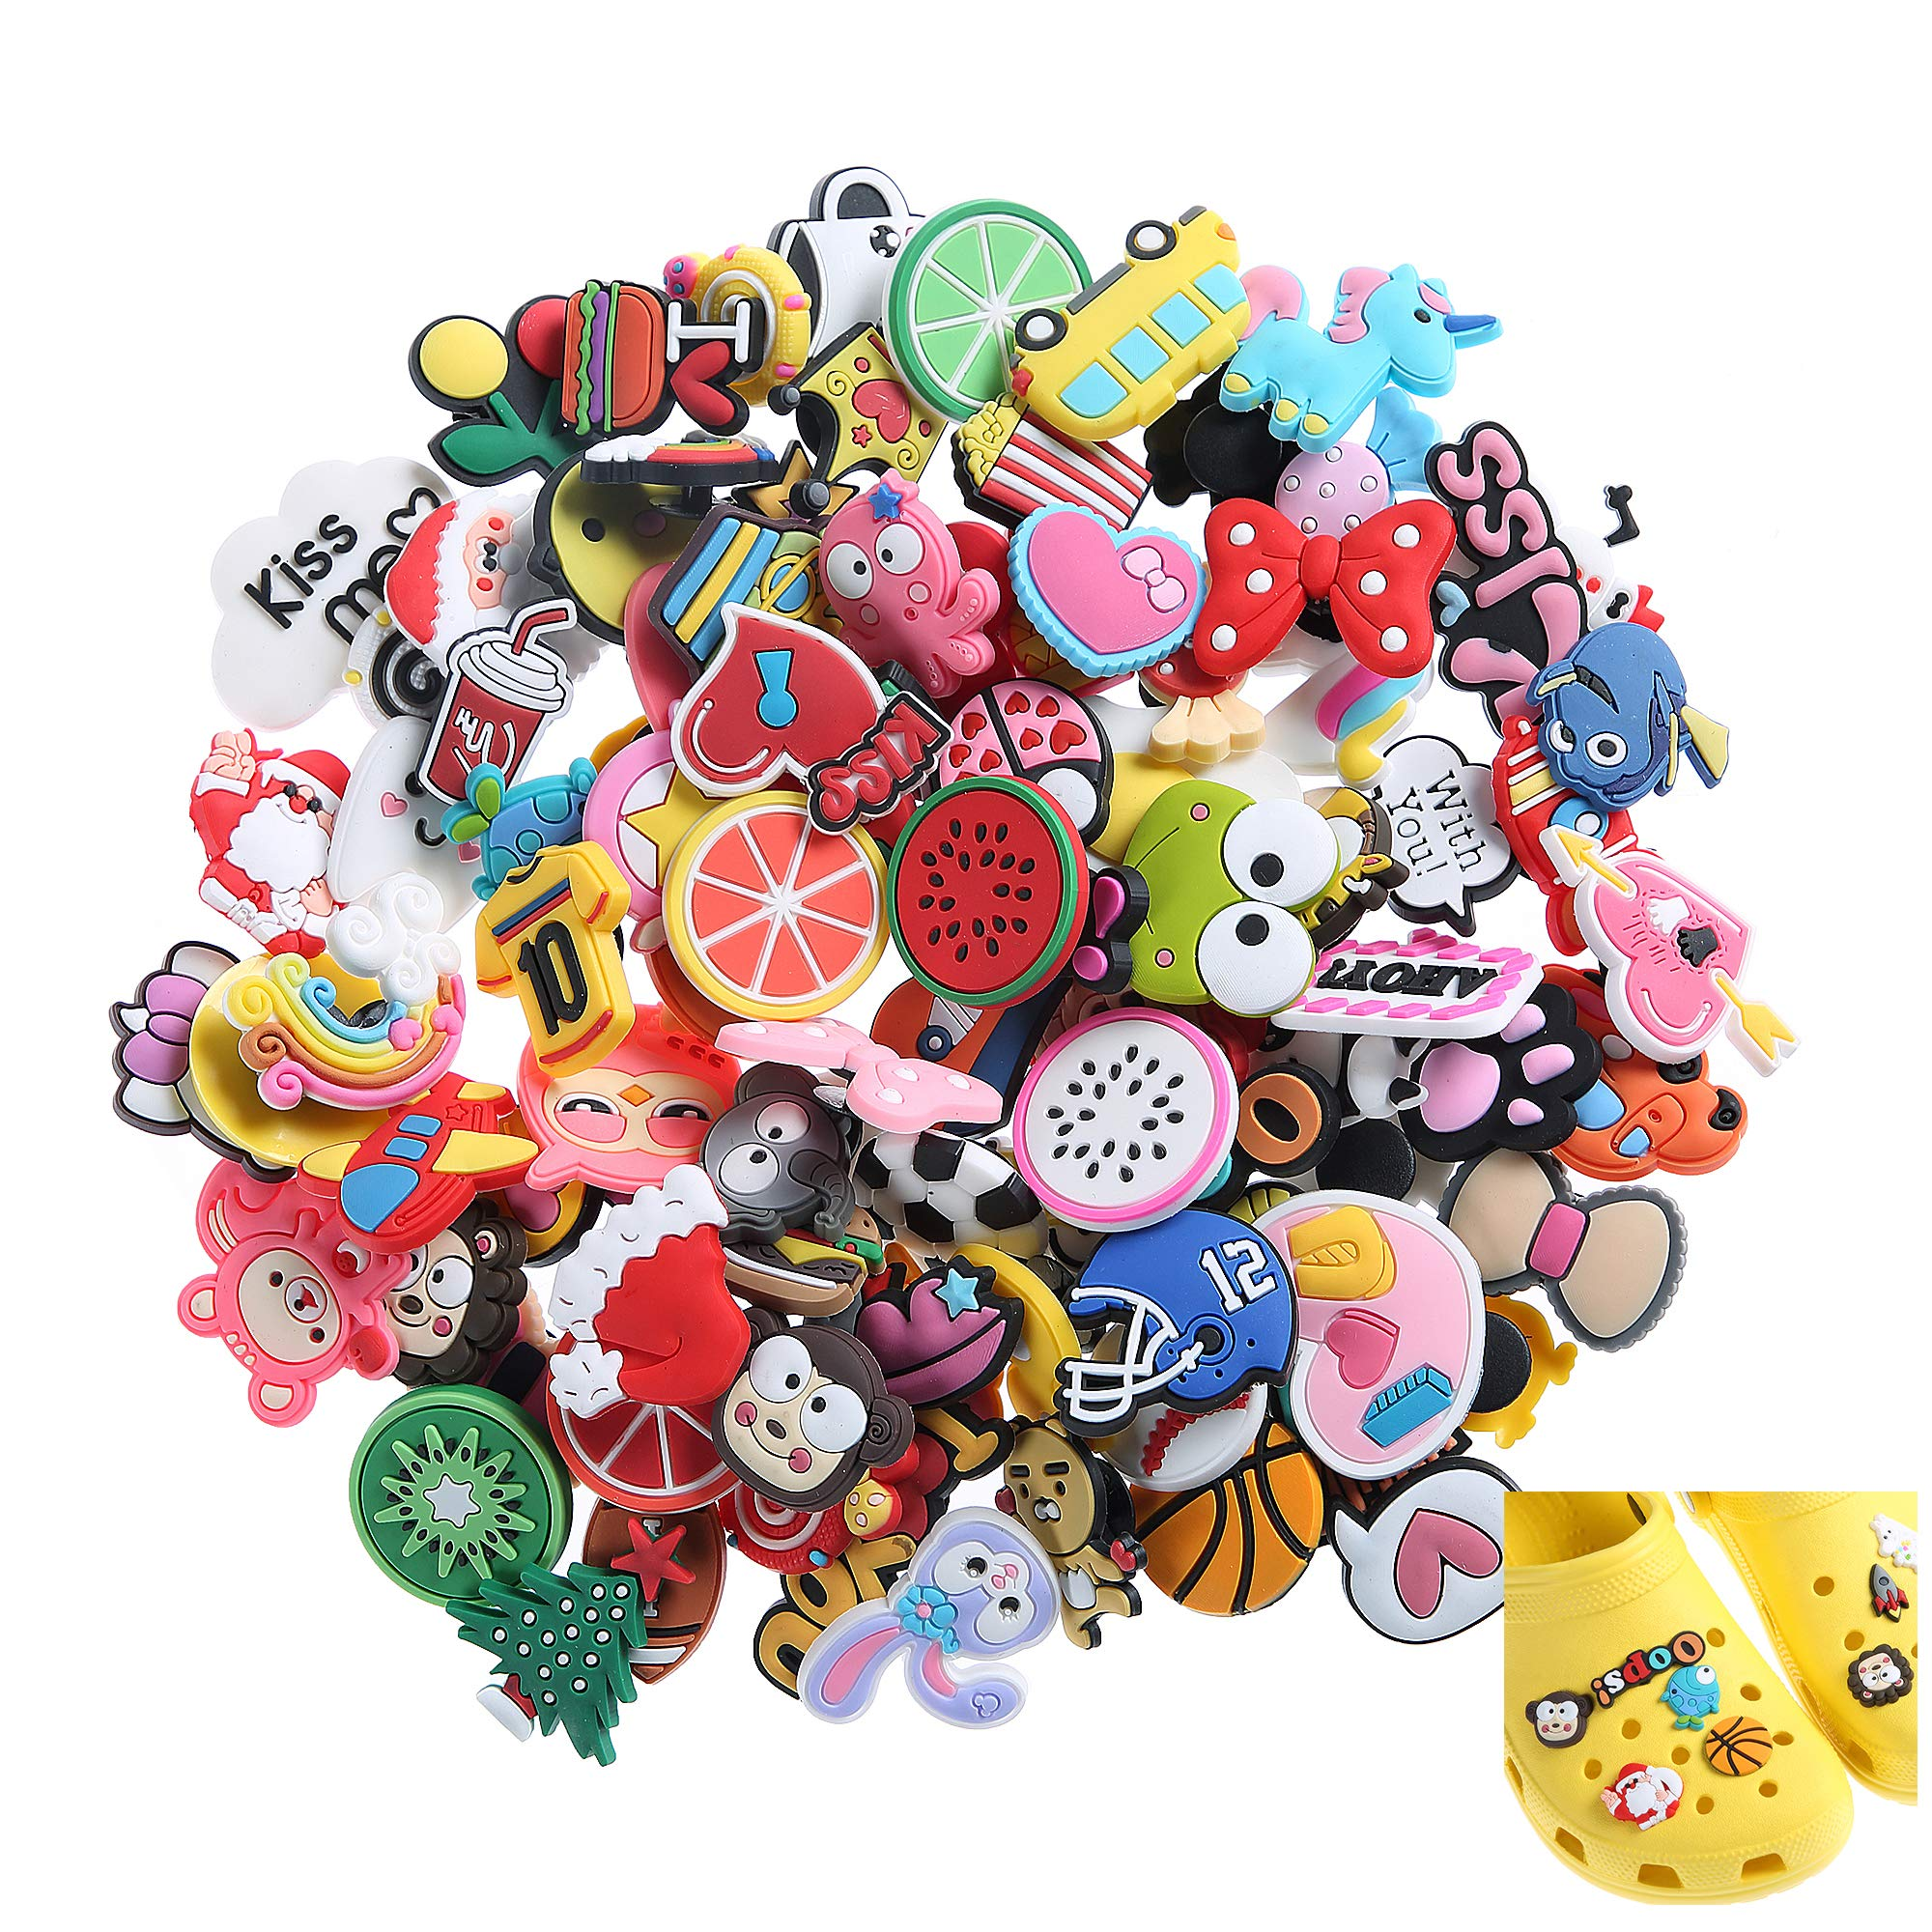 Felice Arts 100pcs Different Shape Jibbitz Shoes Charms Fits for Croc Clog Shoes & Wristband Bracelet Party Gifts by Felice Arts